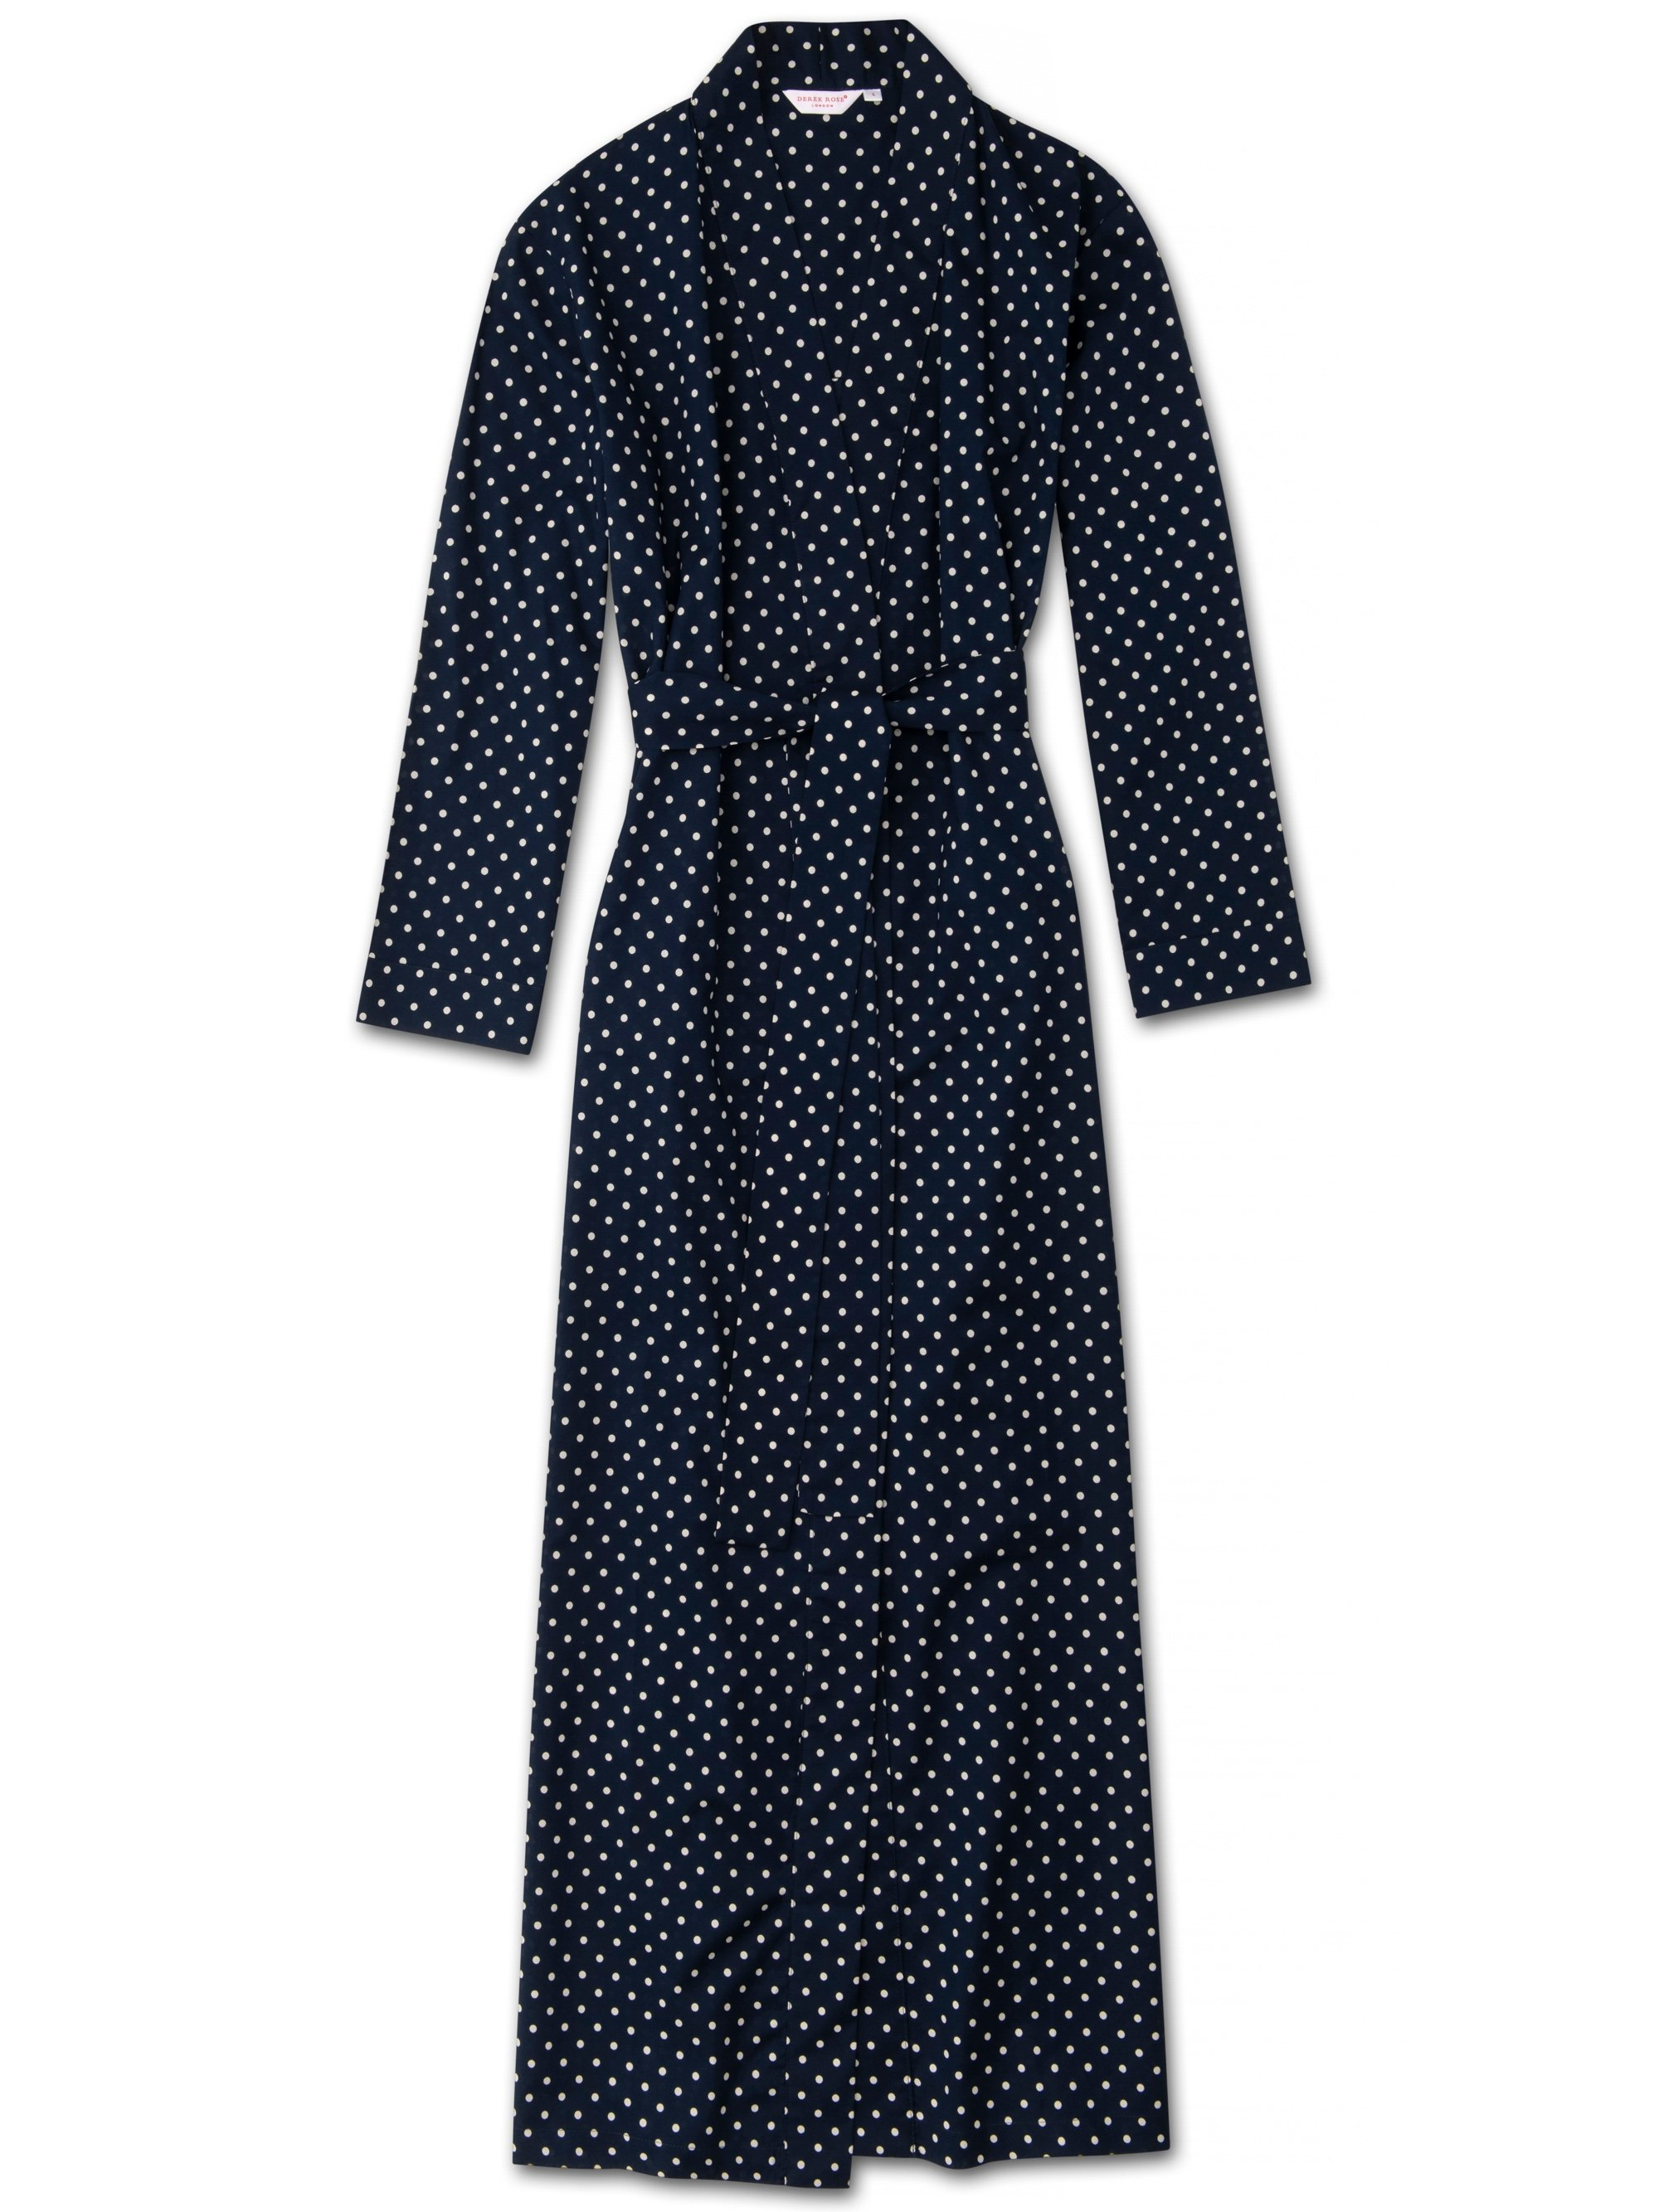 Women's Full Length Dressing Gown Plaza 60 Cotton Batiste Navy